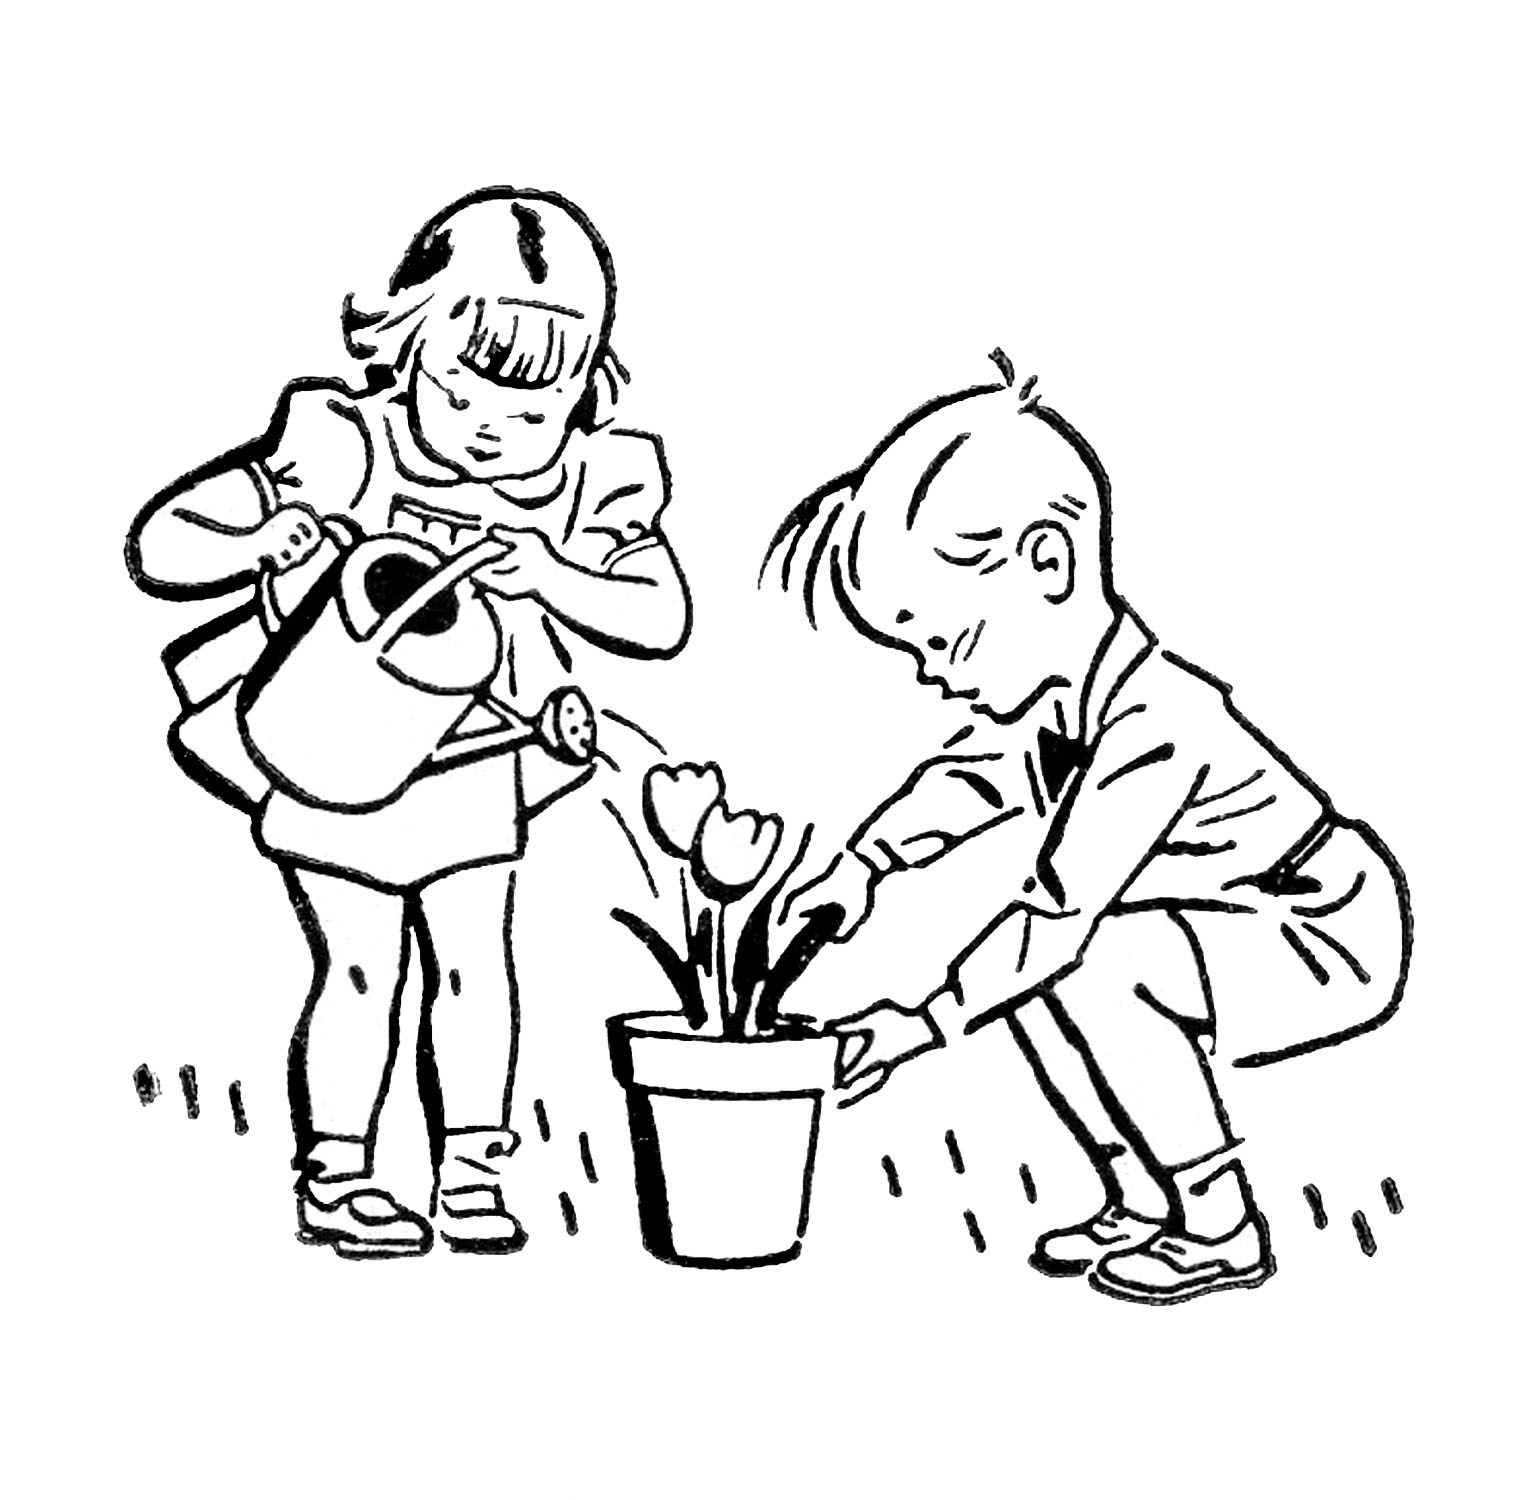 Kids being kind clipart black and white svg freeuse stock Children cleaning the community clipart black and white 5 ... svg freeuse stock